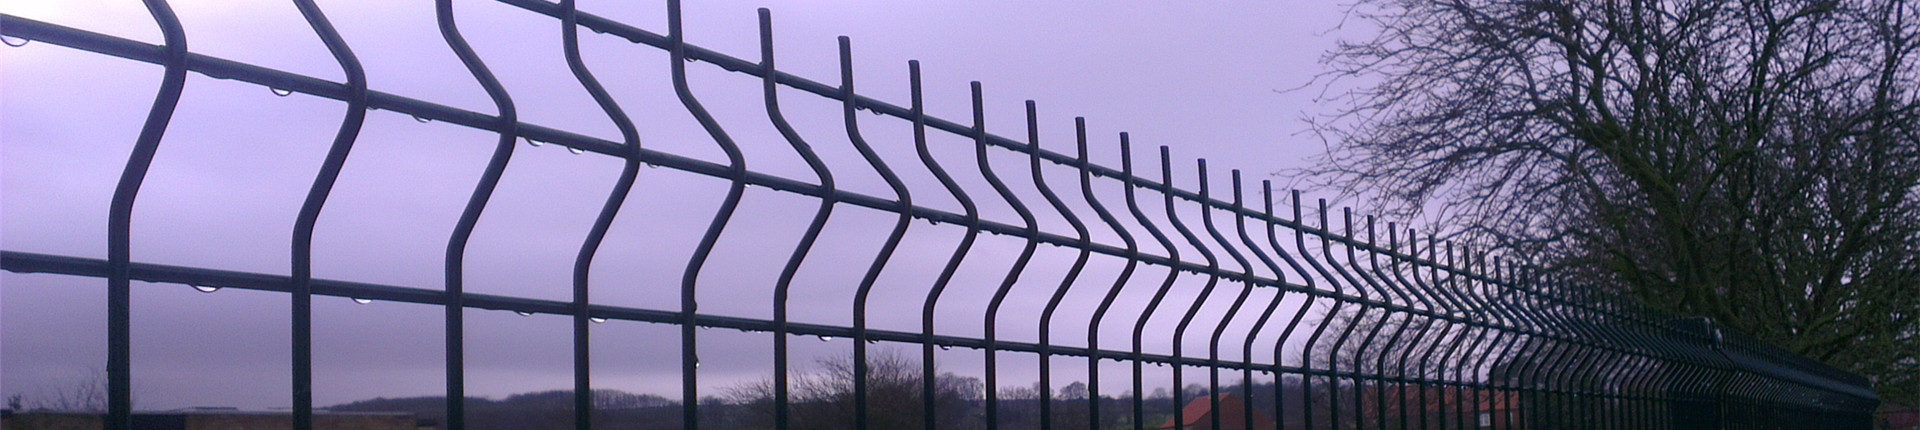 V Mesh Perimeter Security Fence